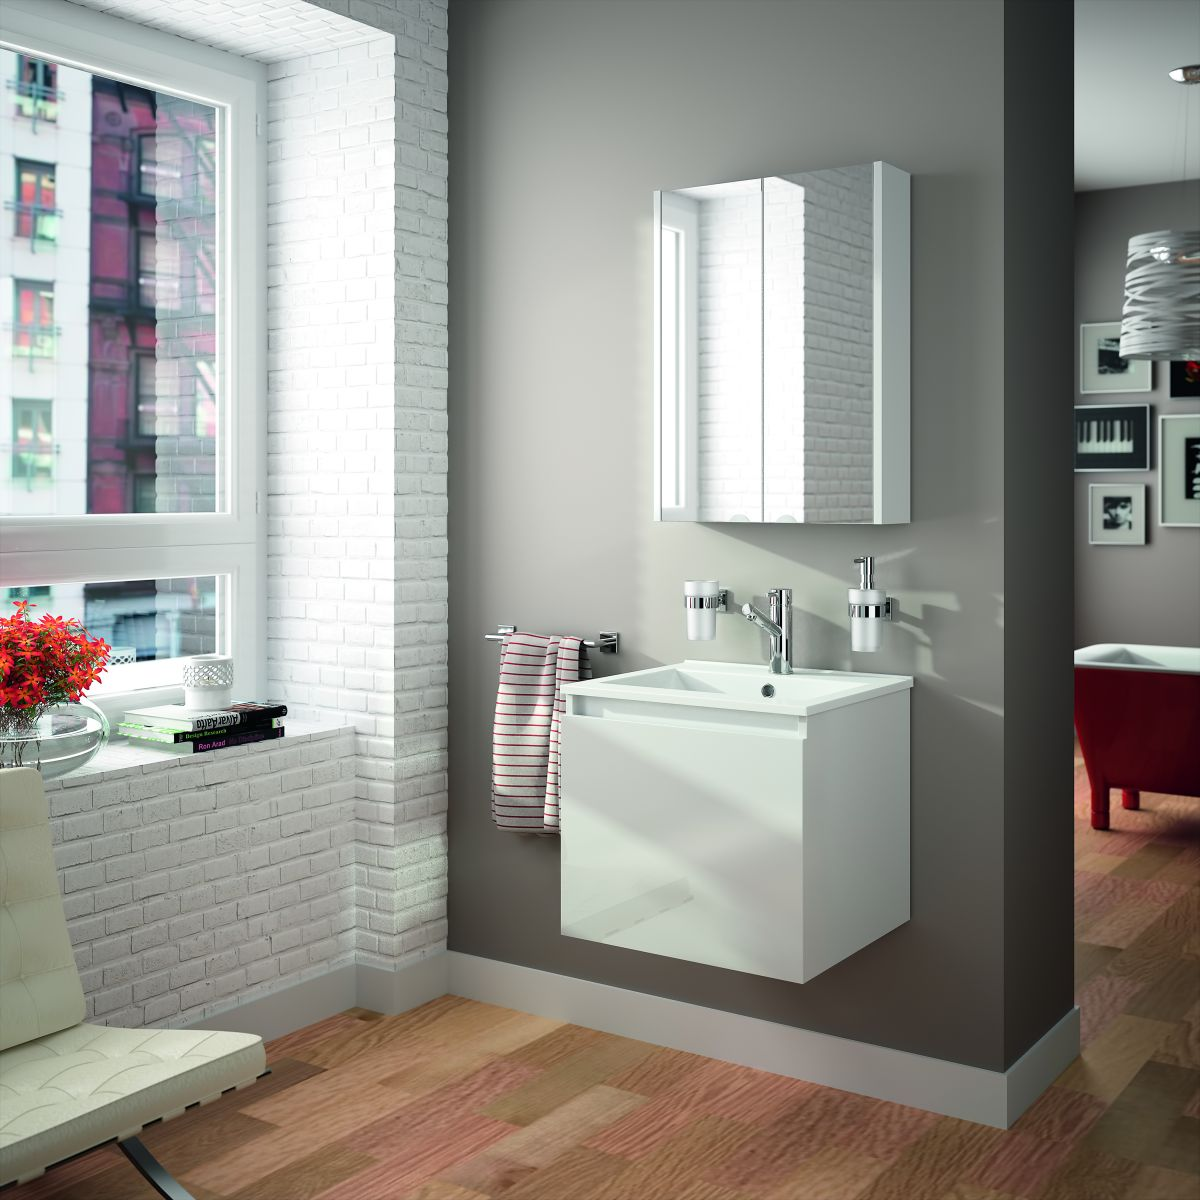 Update your bathroom in an hour or less! - Croydex